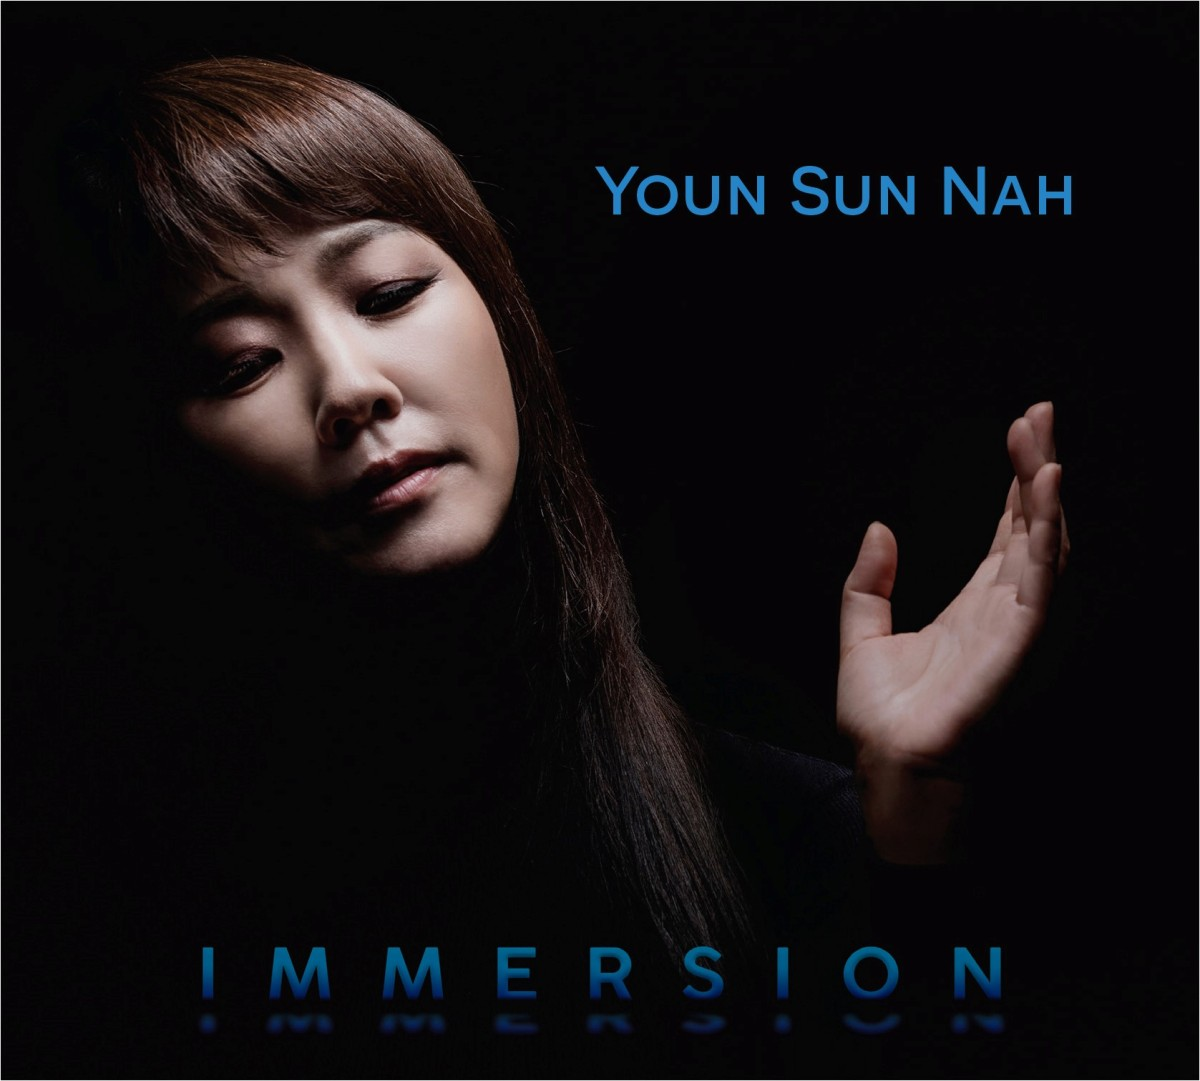 Youn Sun Nah - Immersion